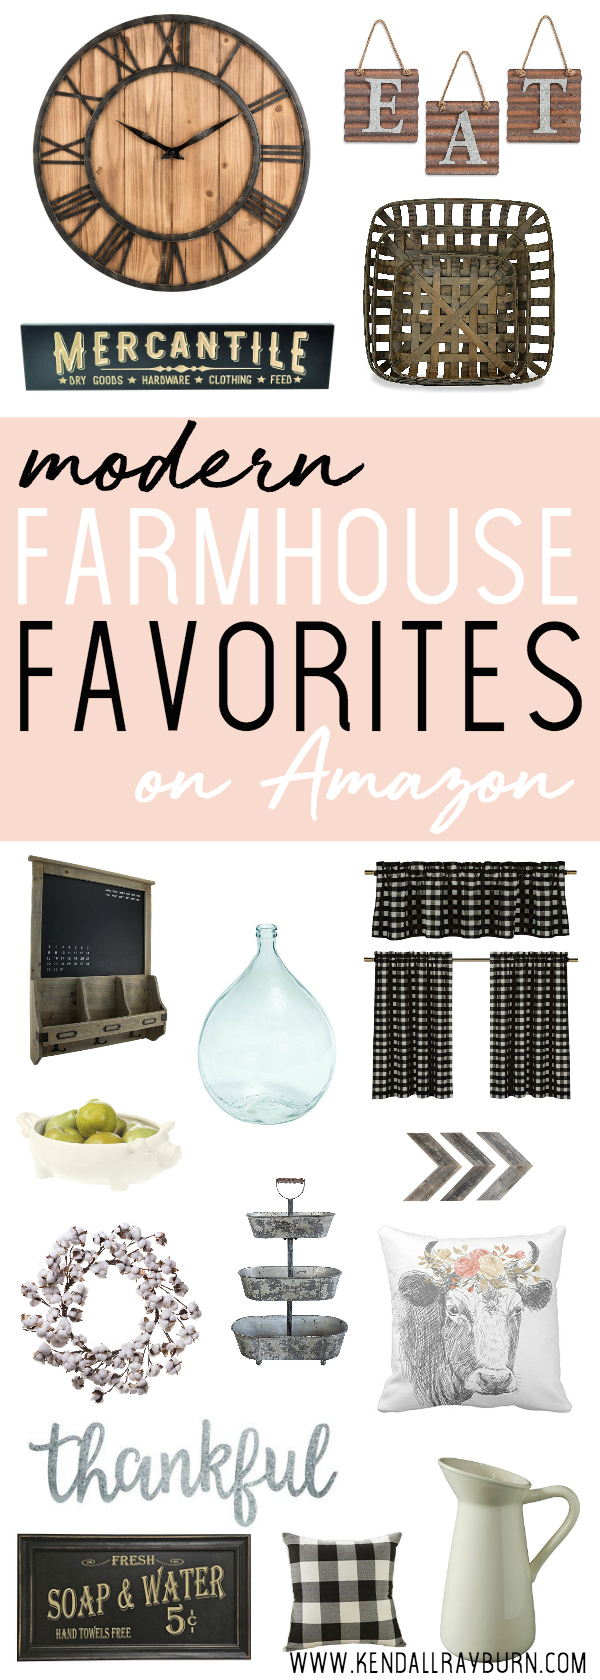 Modern Farmhouse Favorites on Amazon